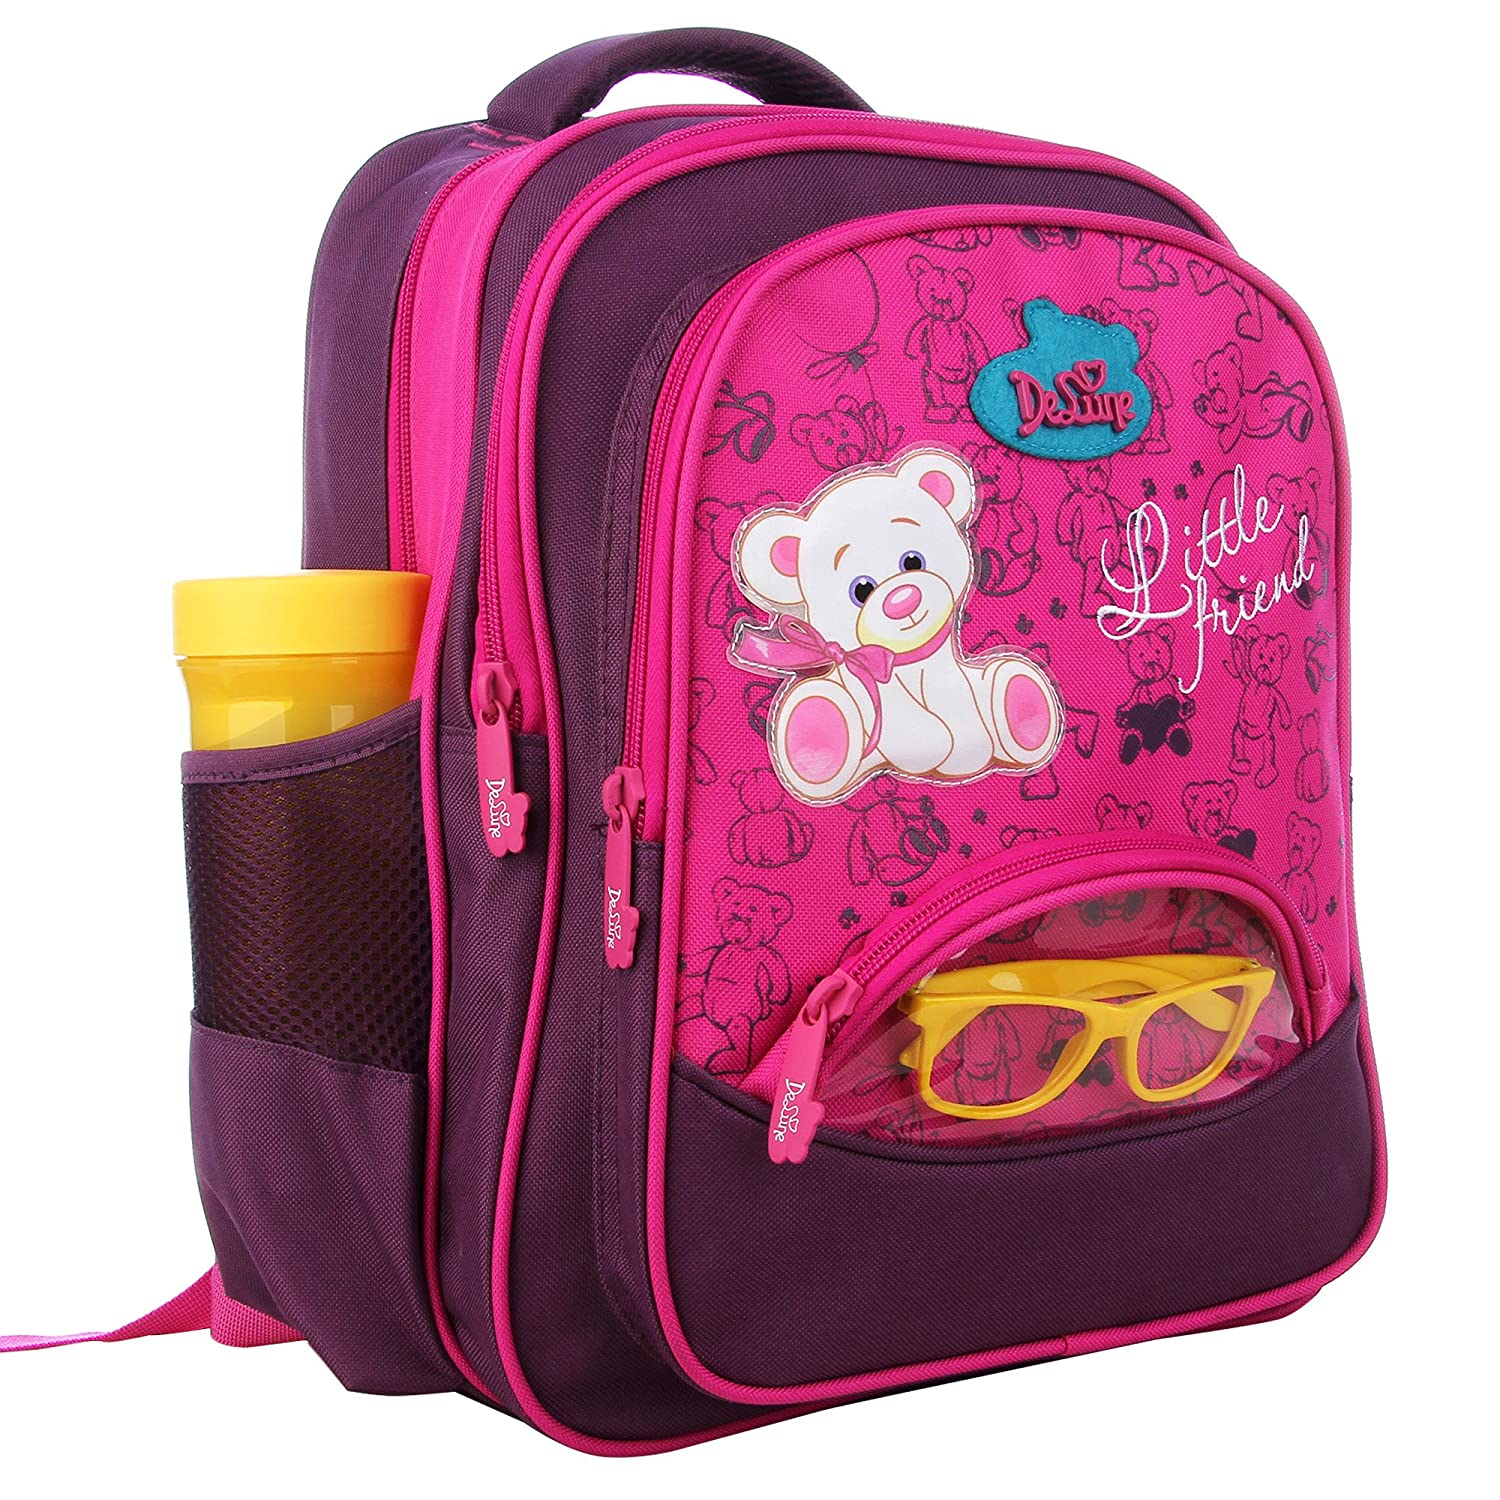 Delune Kids Backpack for Boys and Girls Primary Schoolbag -  Individual Waterproof Orthopedic Noble (DA001)  Amazon.ca  Luggage   Bags 3181add38c931